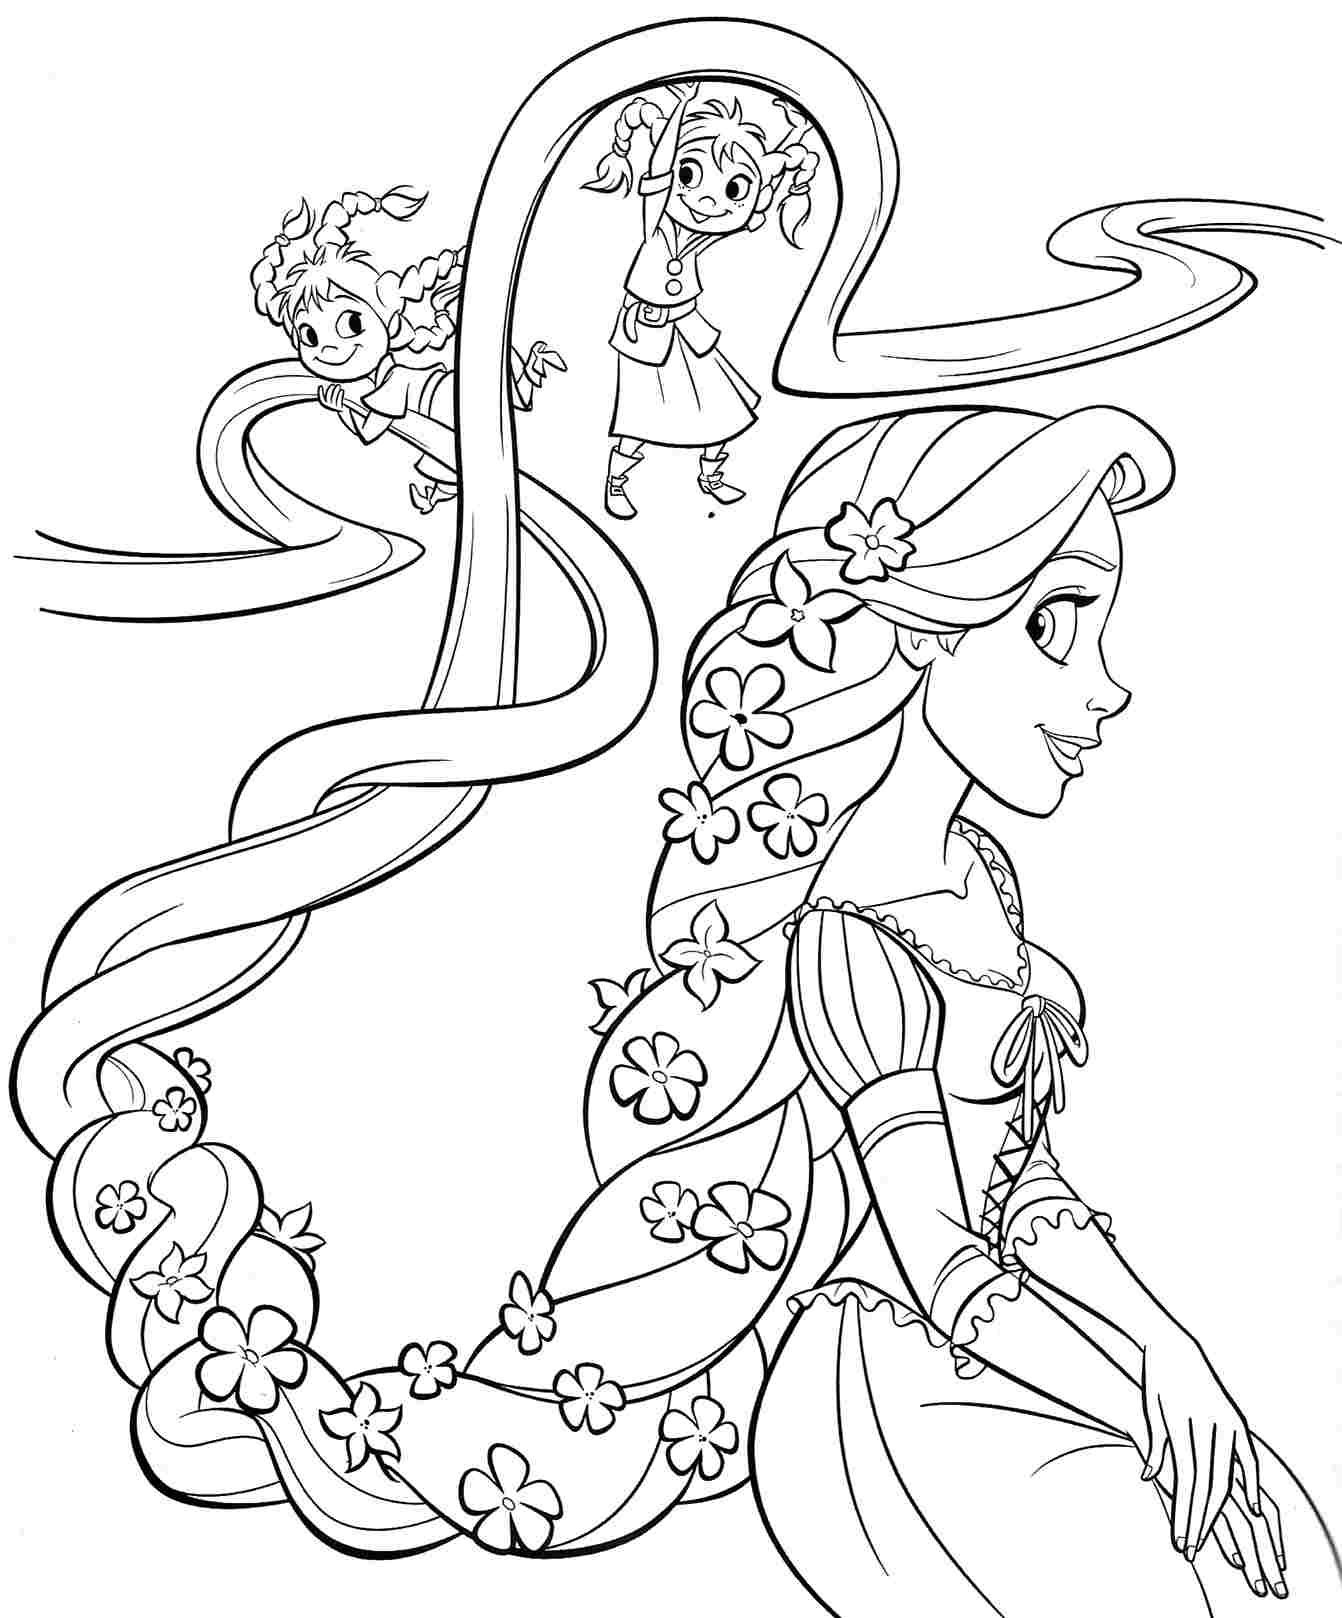 Disney princess coloring book for adults - Printable Free Disney Princess Rapunzel Coloring Sheets For Kids